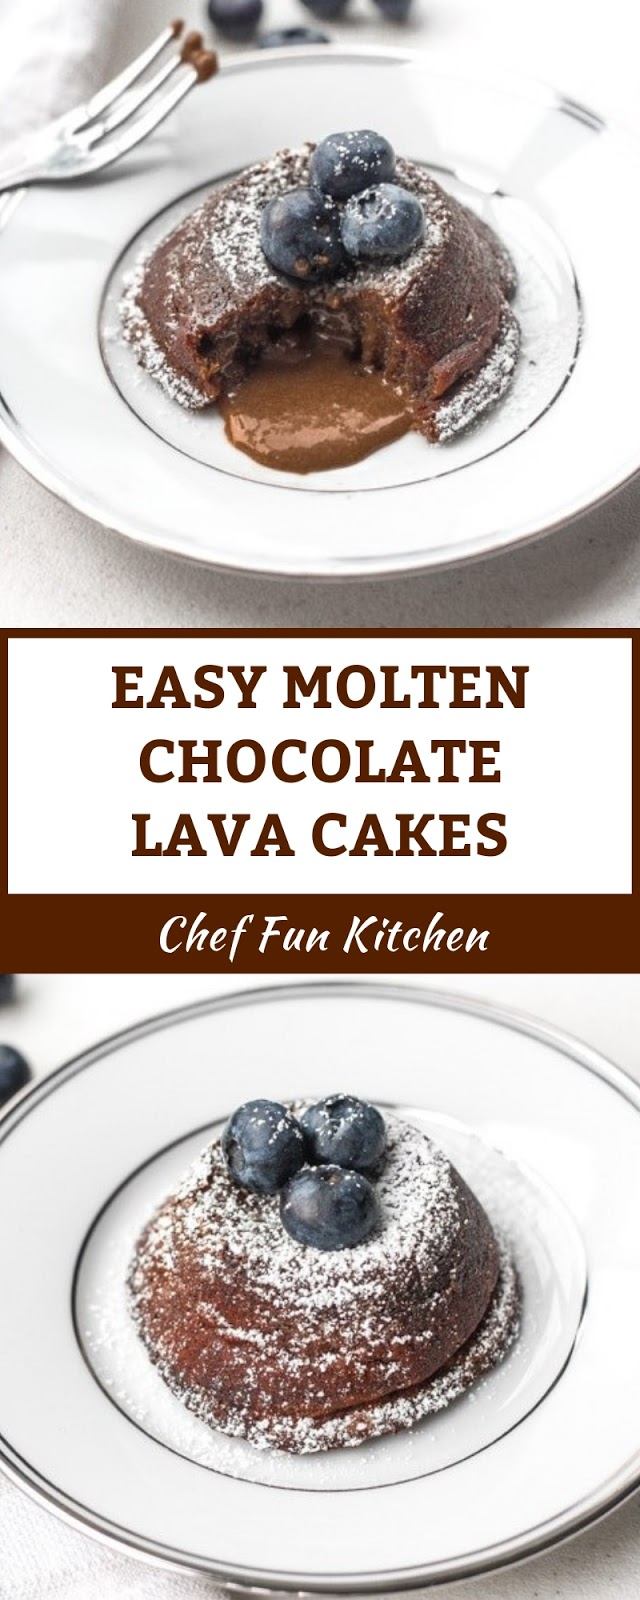 EASY MOLTEN CHOCOLATE LAVA CAKES